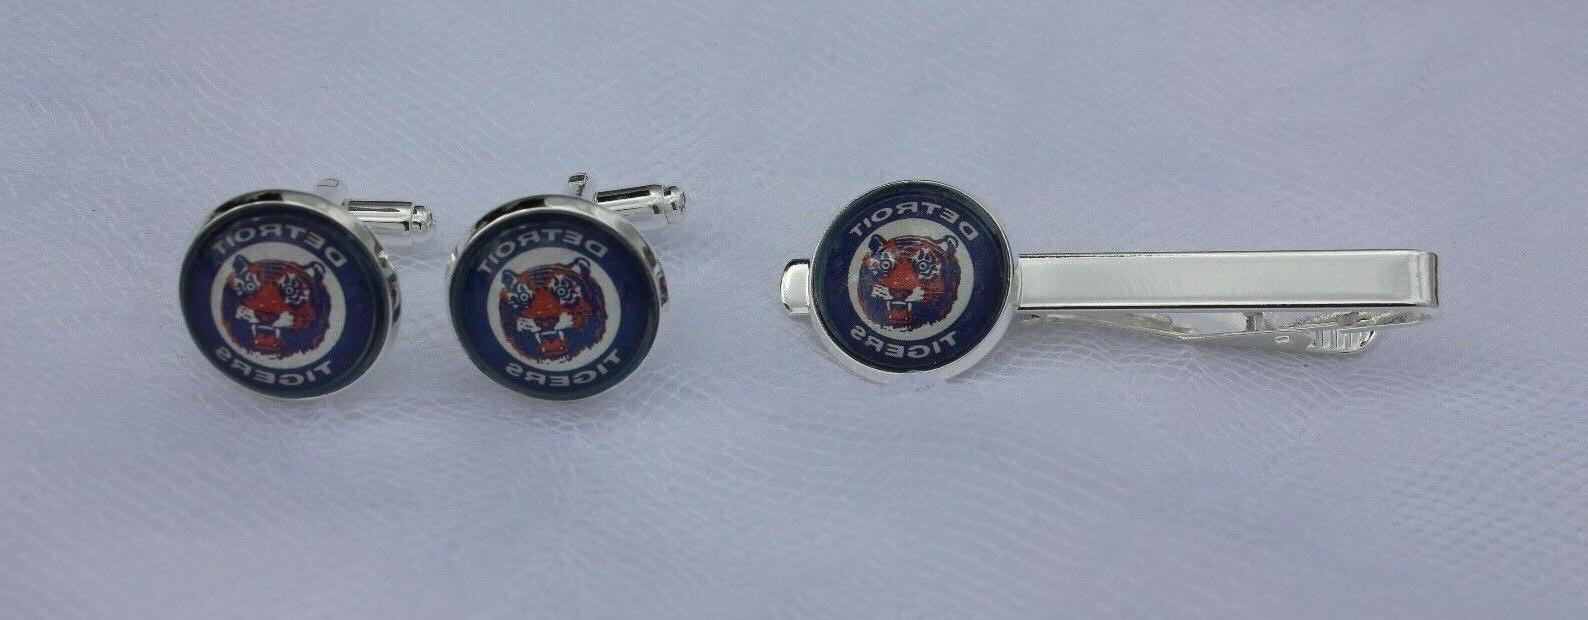 detroit tigers cuff link and tie clip